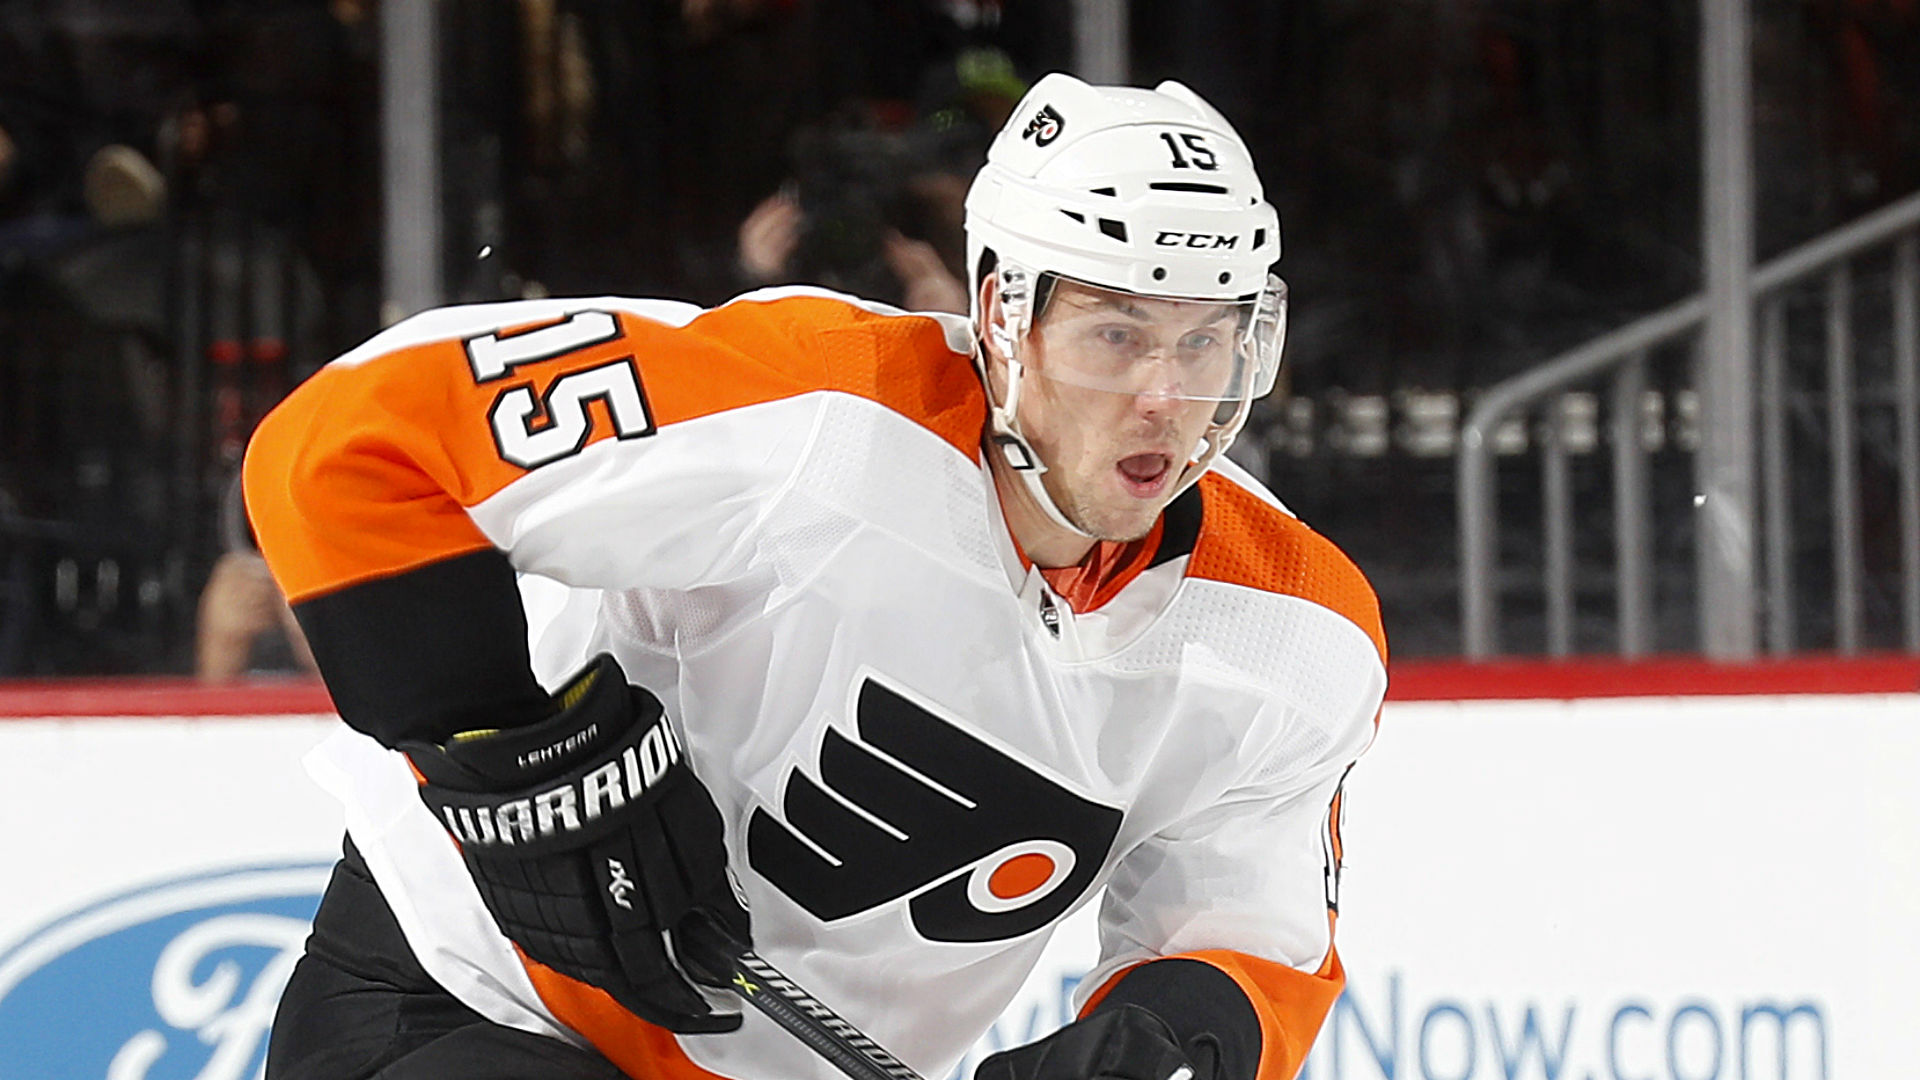 Flyers forward Jori Lehtera questioned about Finnish cocaine ring